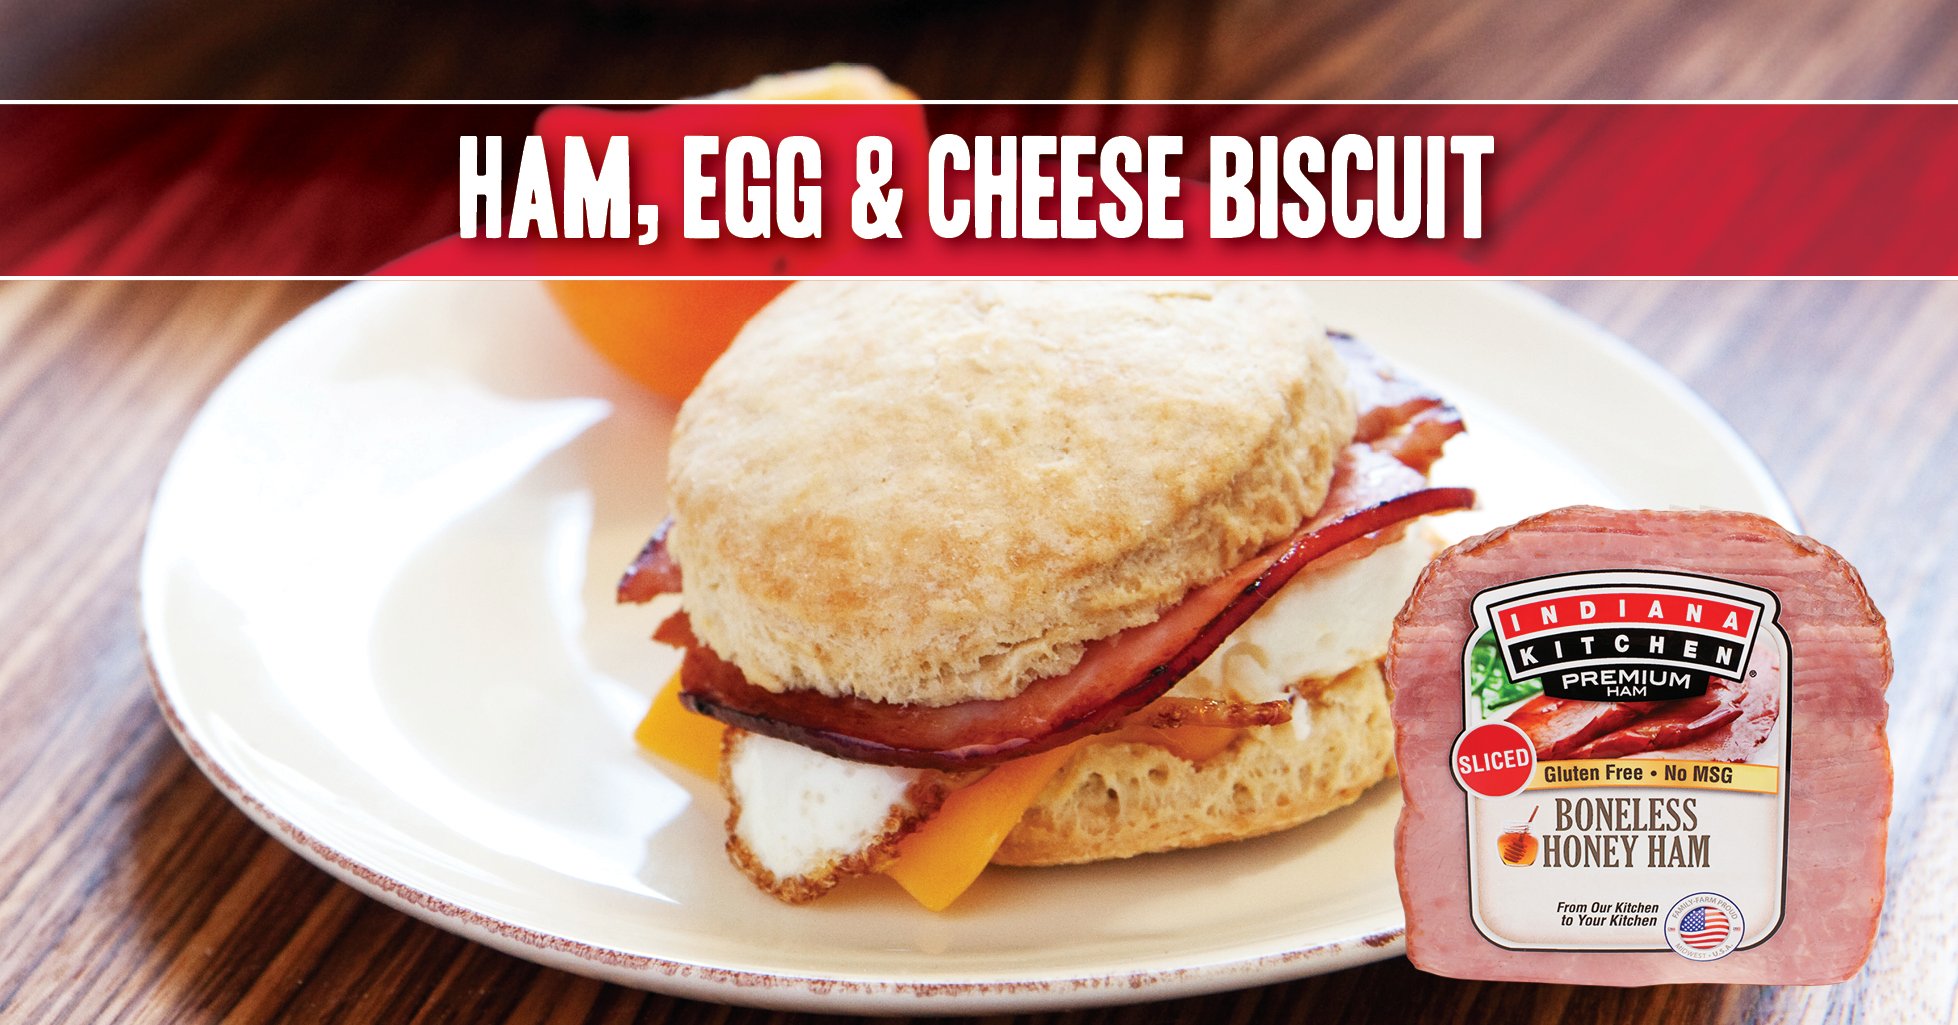 ham egg and cheese breakfast biscuit sandwich featuring Indiana Kitchen ham